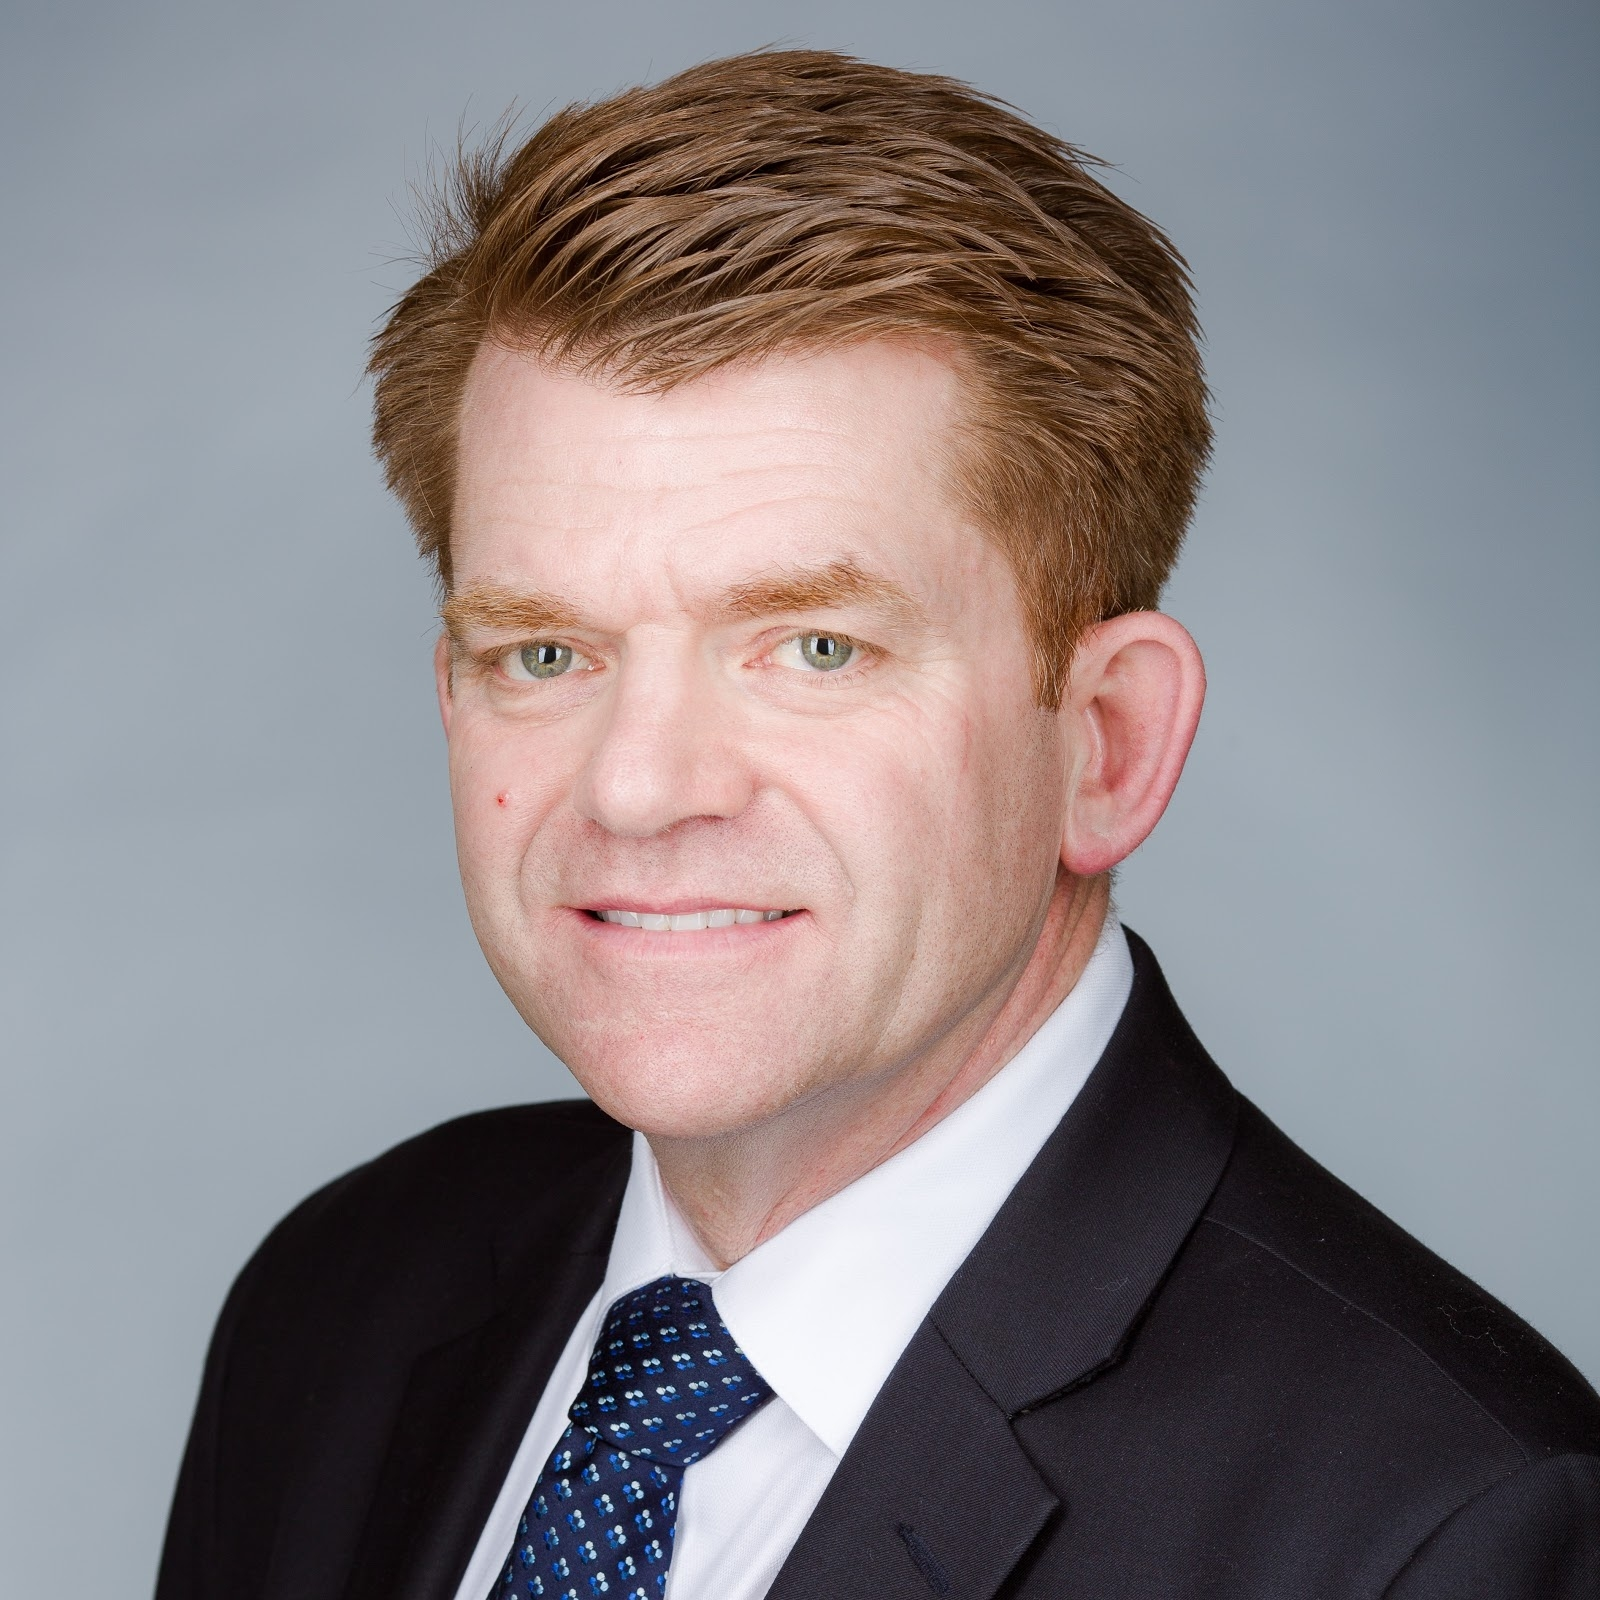 Brian Jean Resigning as MLA